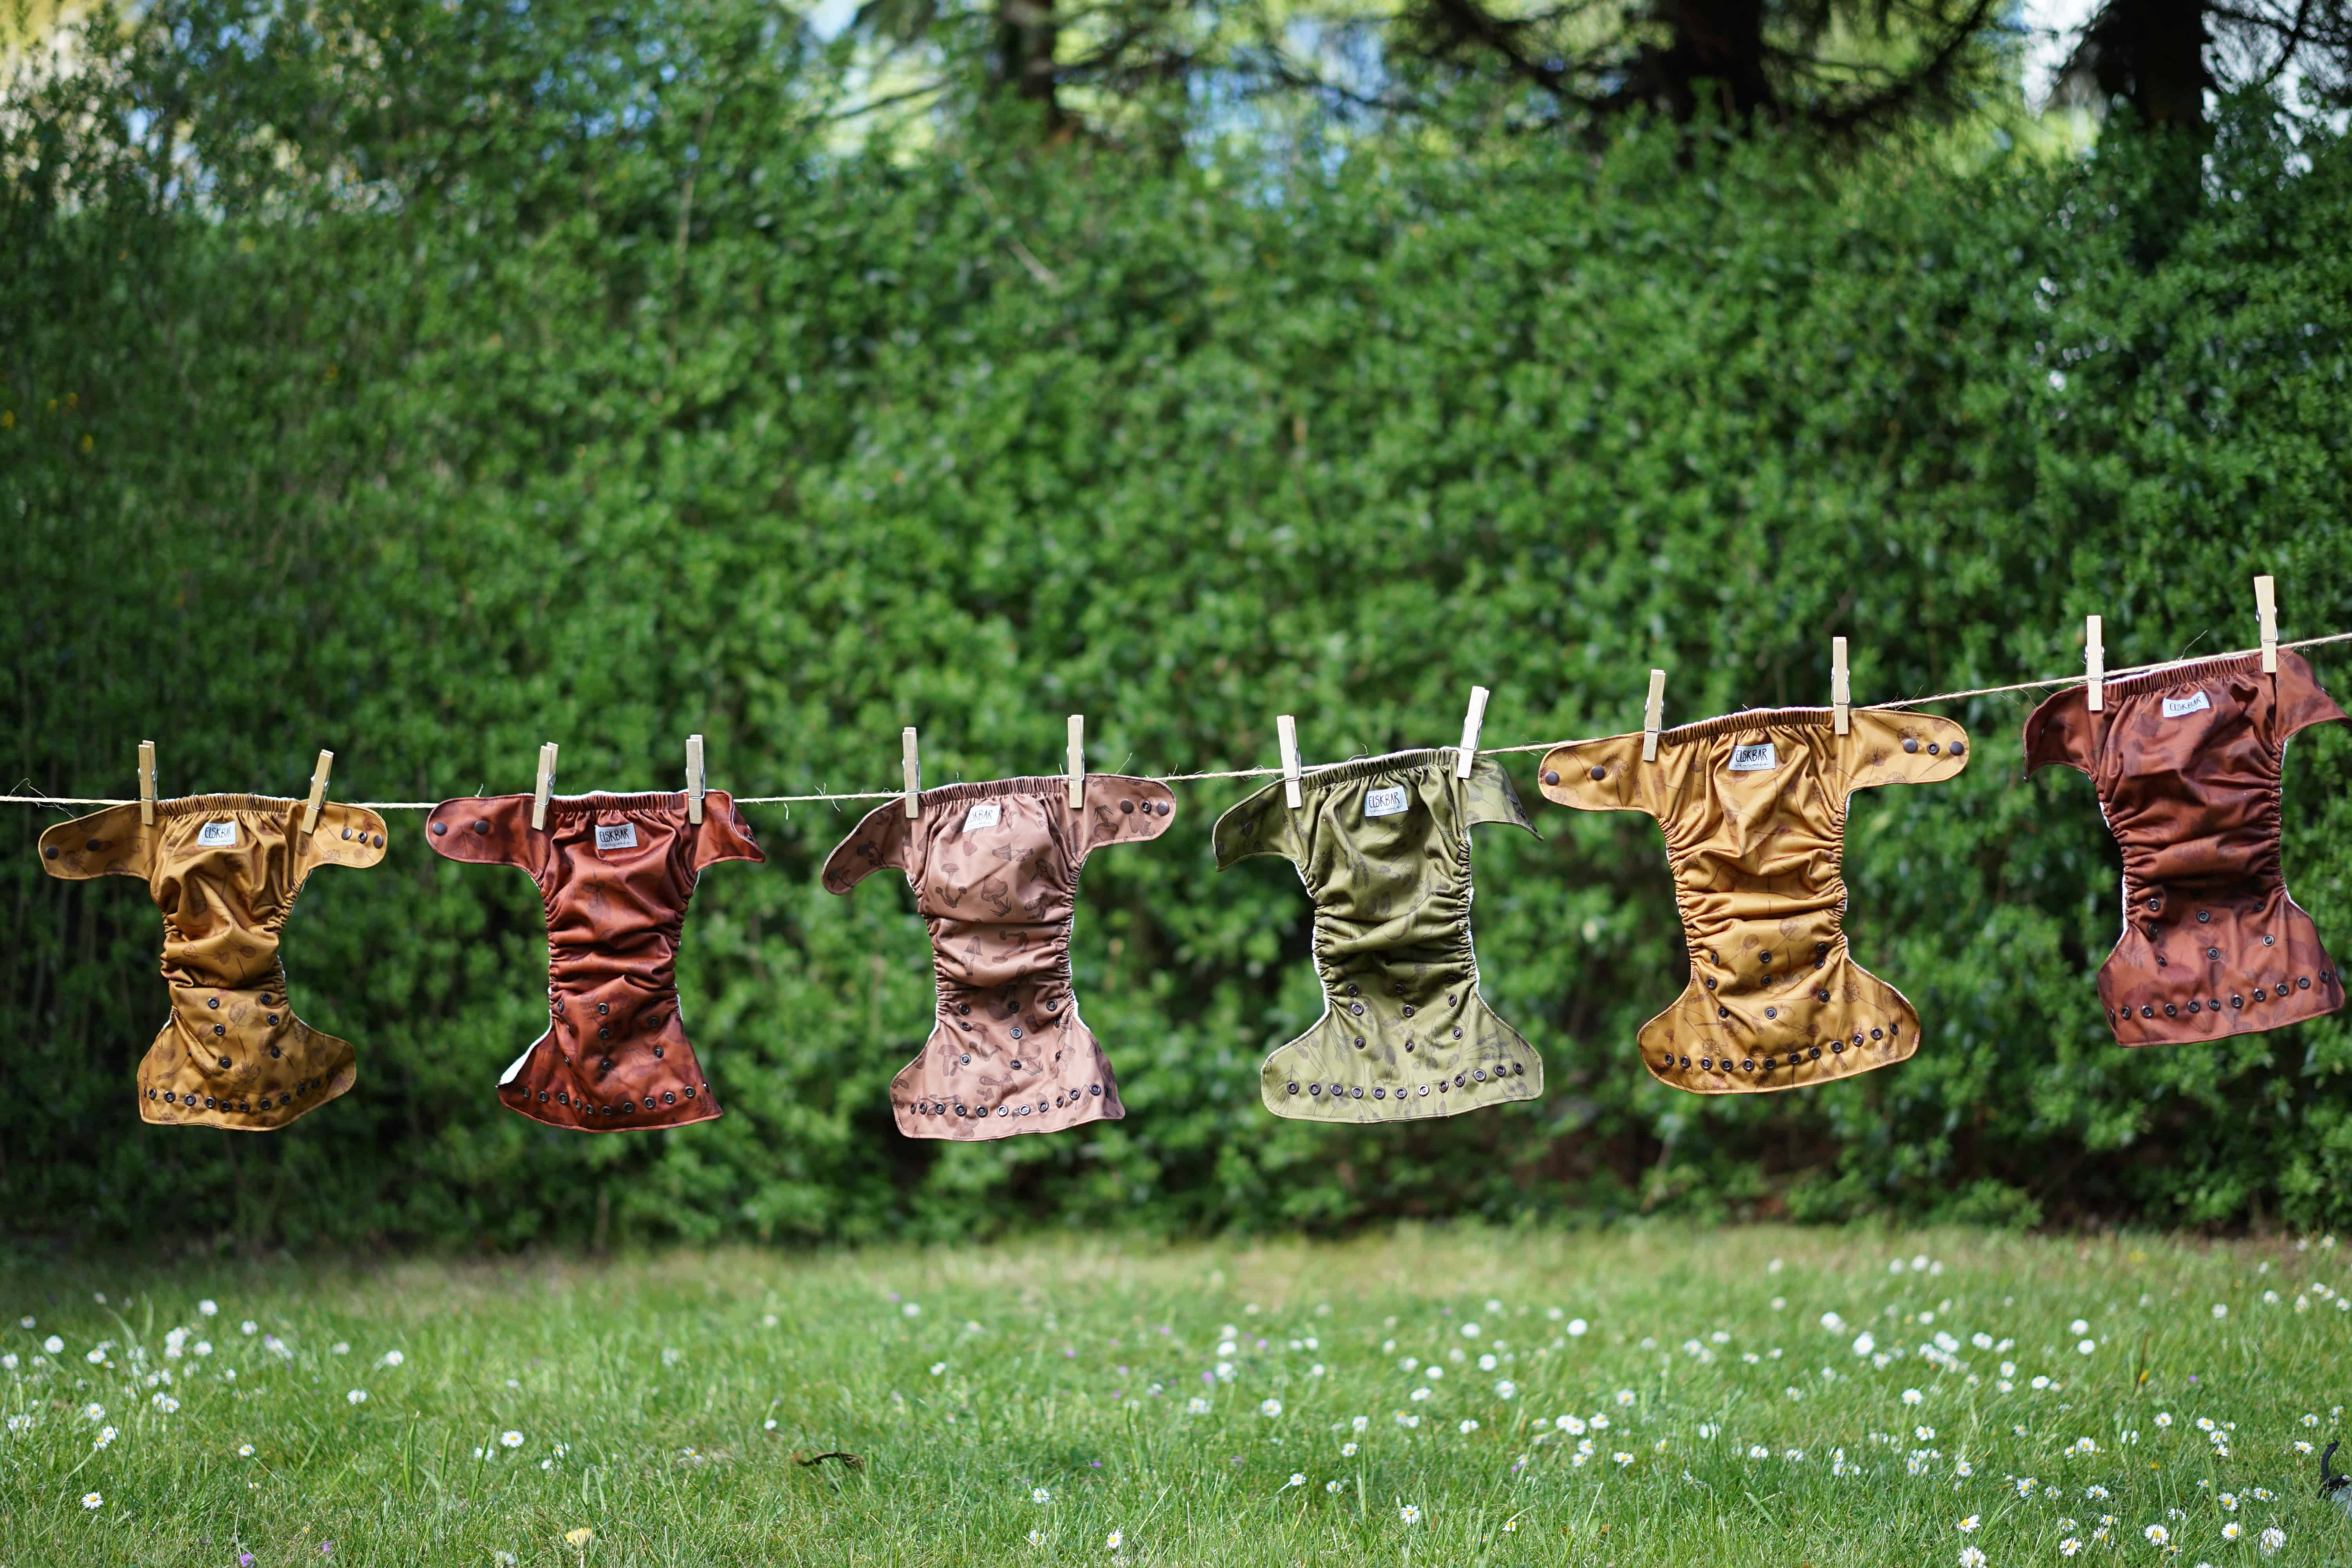 Cloth diapers drying